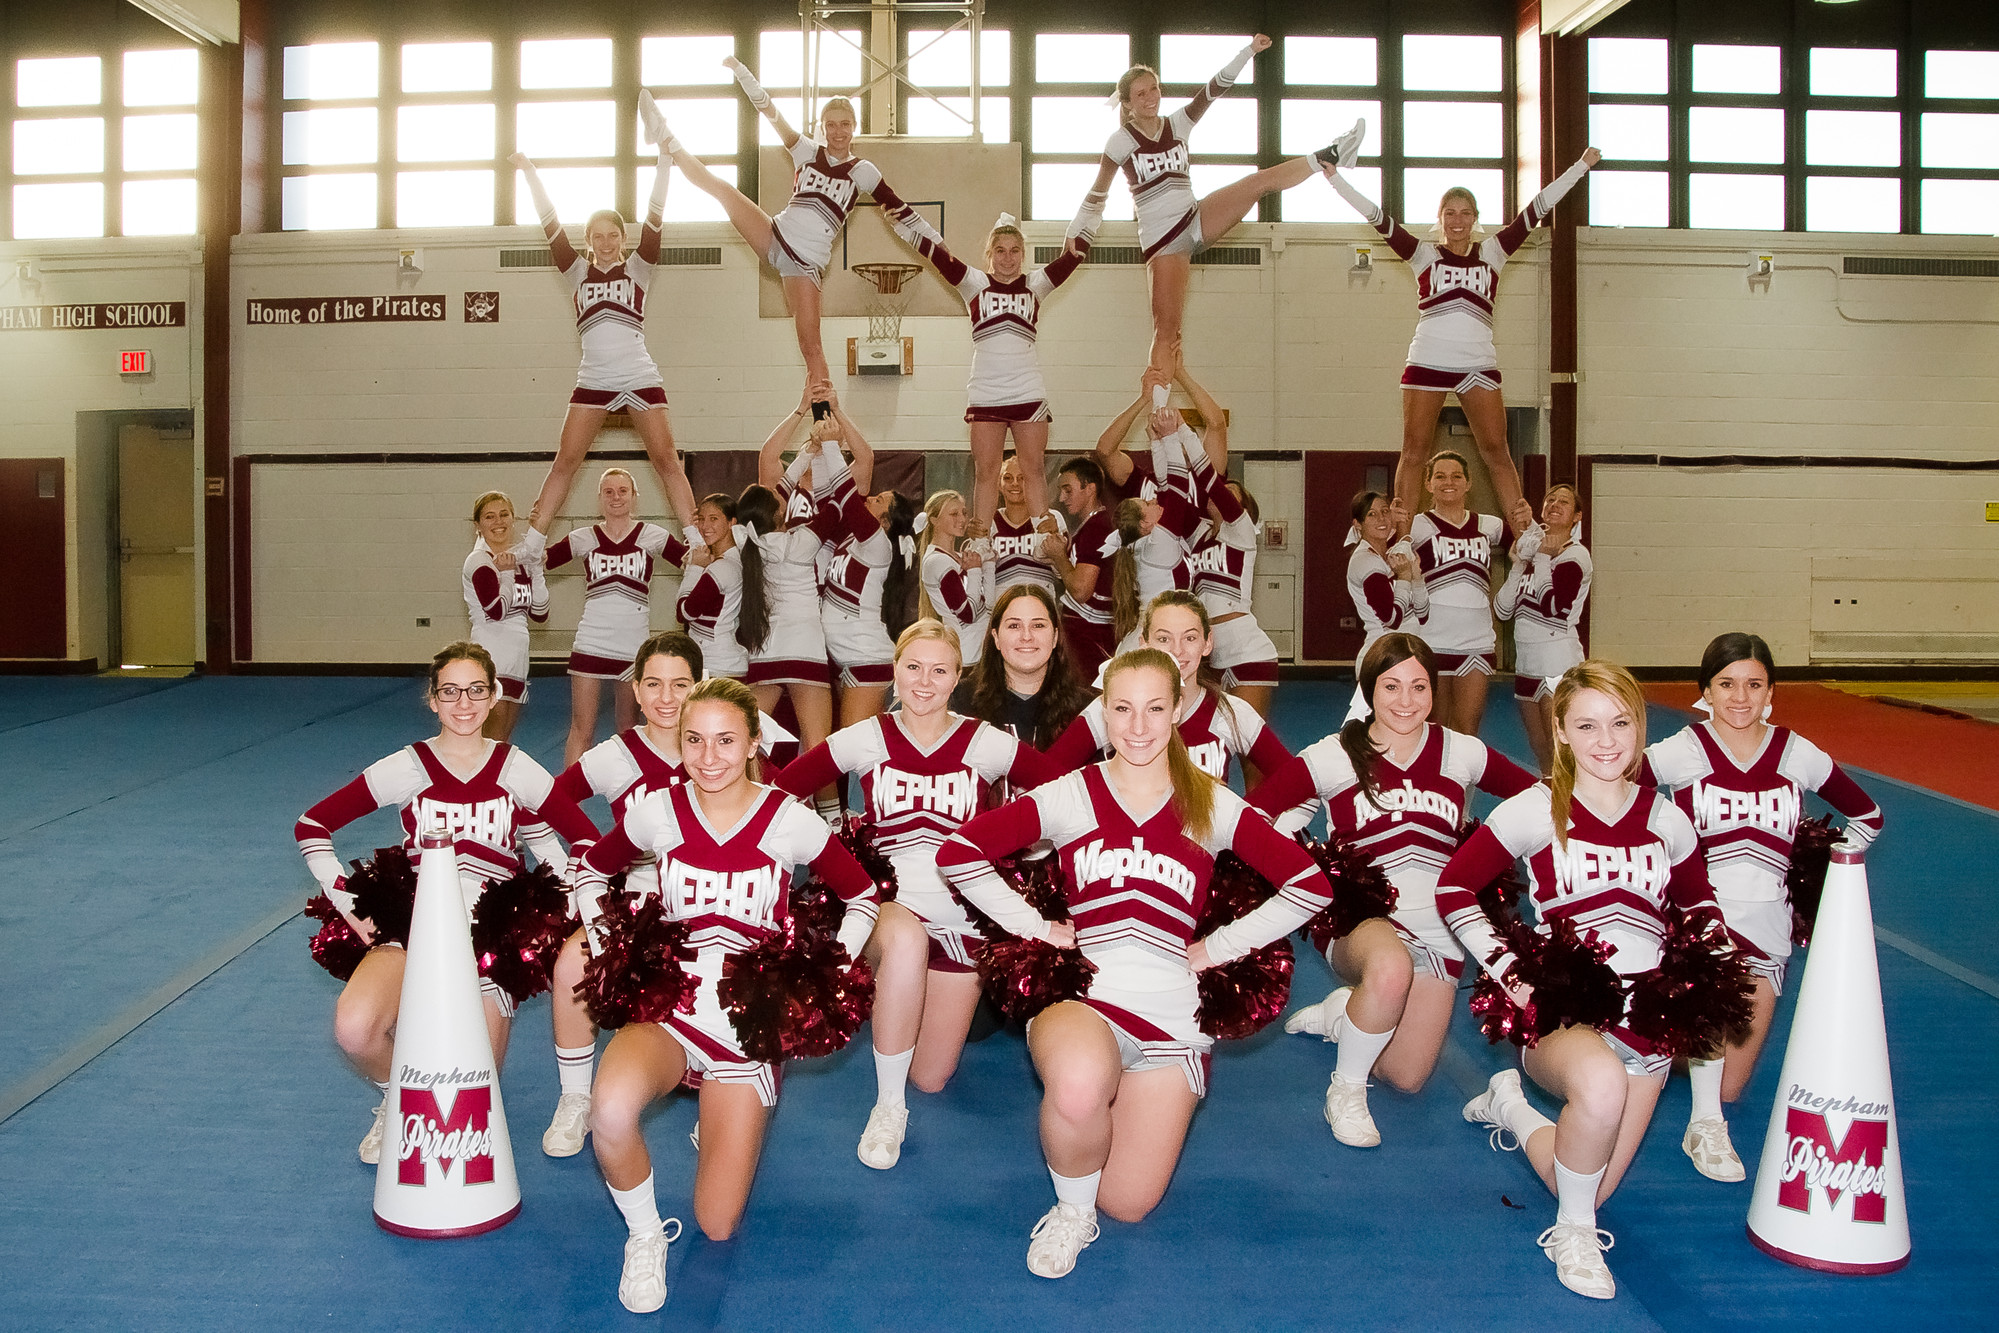 The Mepham High School varsity cheerleading team, which recently qualified for the national championships, has been working on its routine since August.